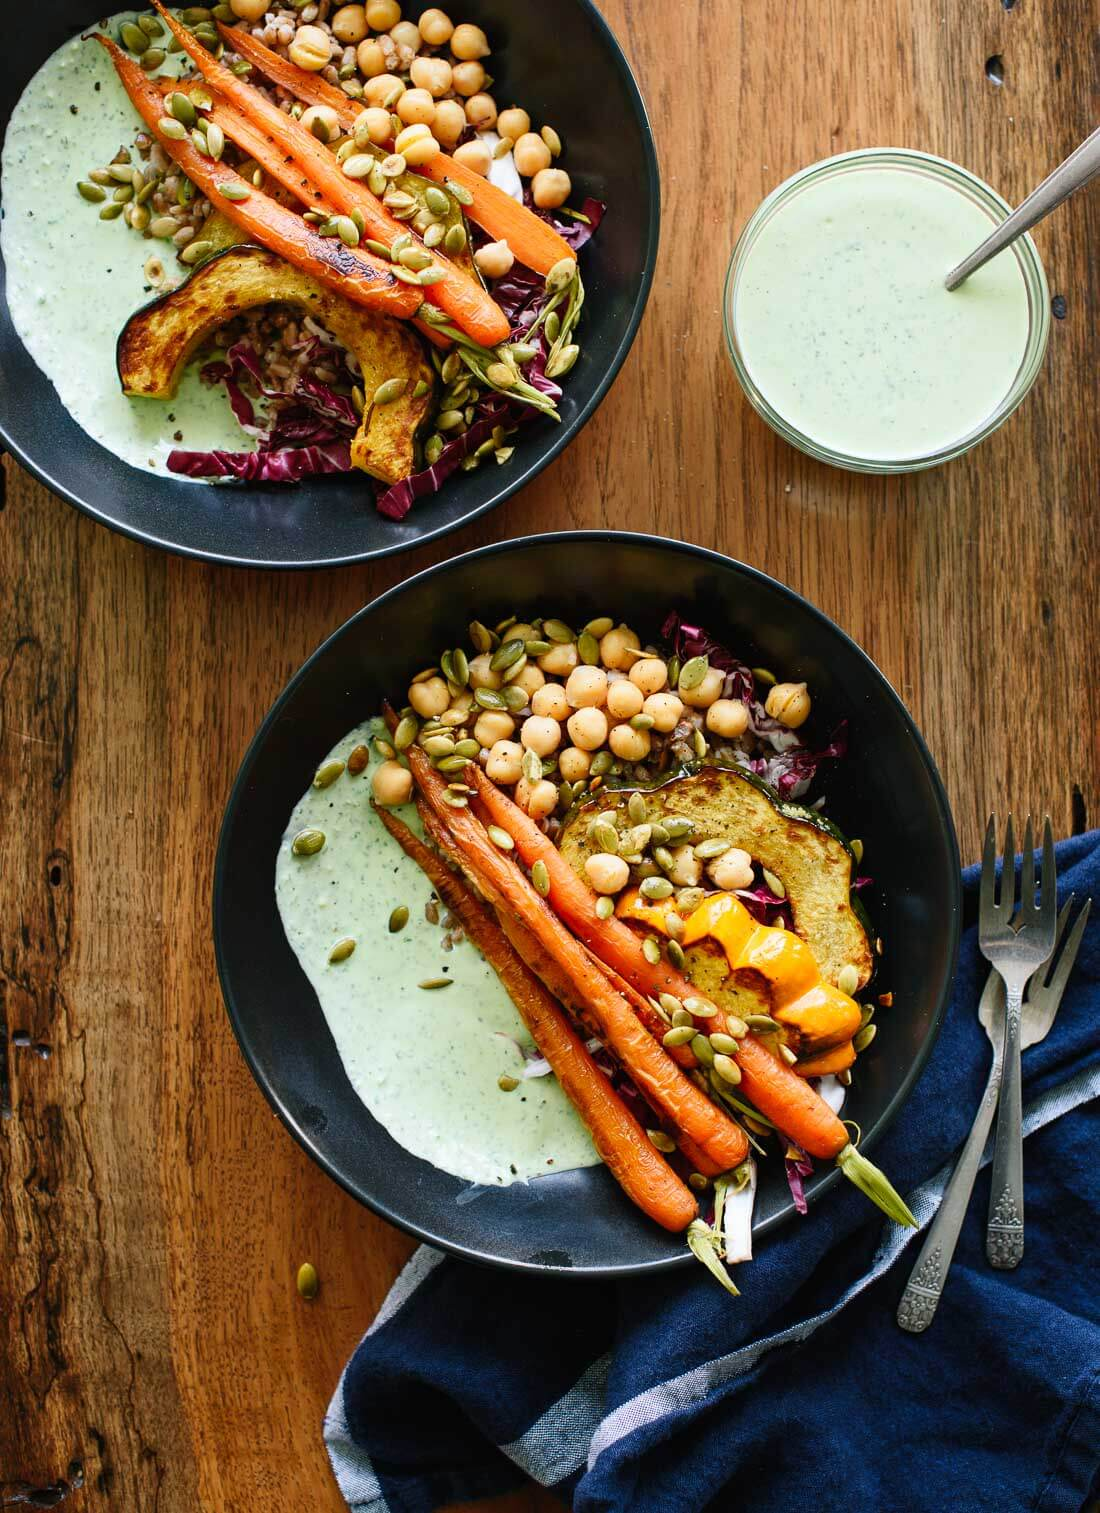 Healthy vegetarian dinner with roasted vegetables, warm whole grains, chickpeas and herbed yogurt sauce - cookieandkate.com